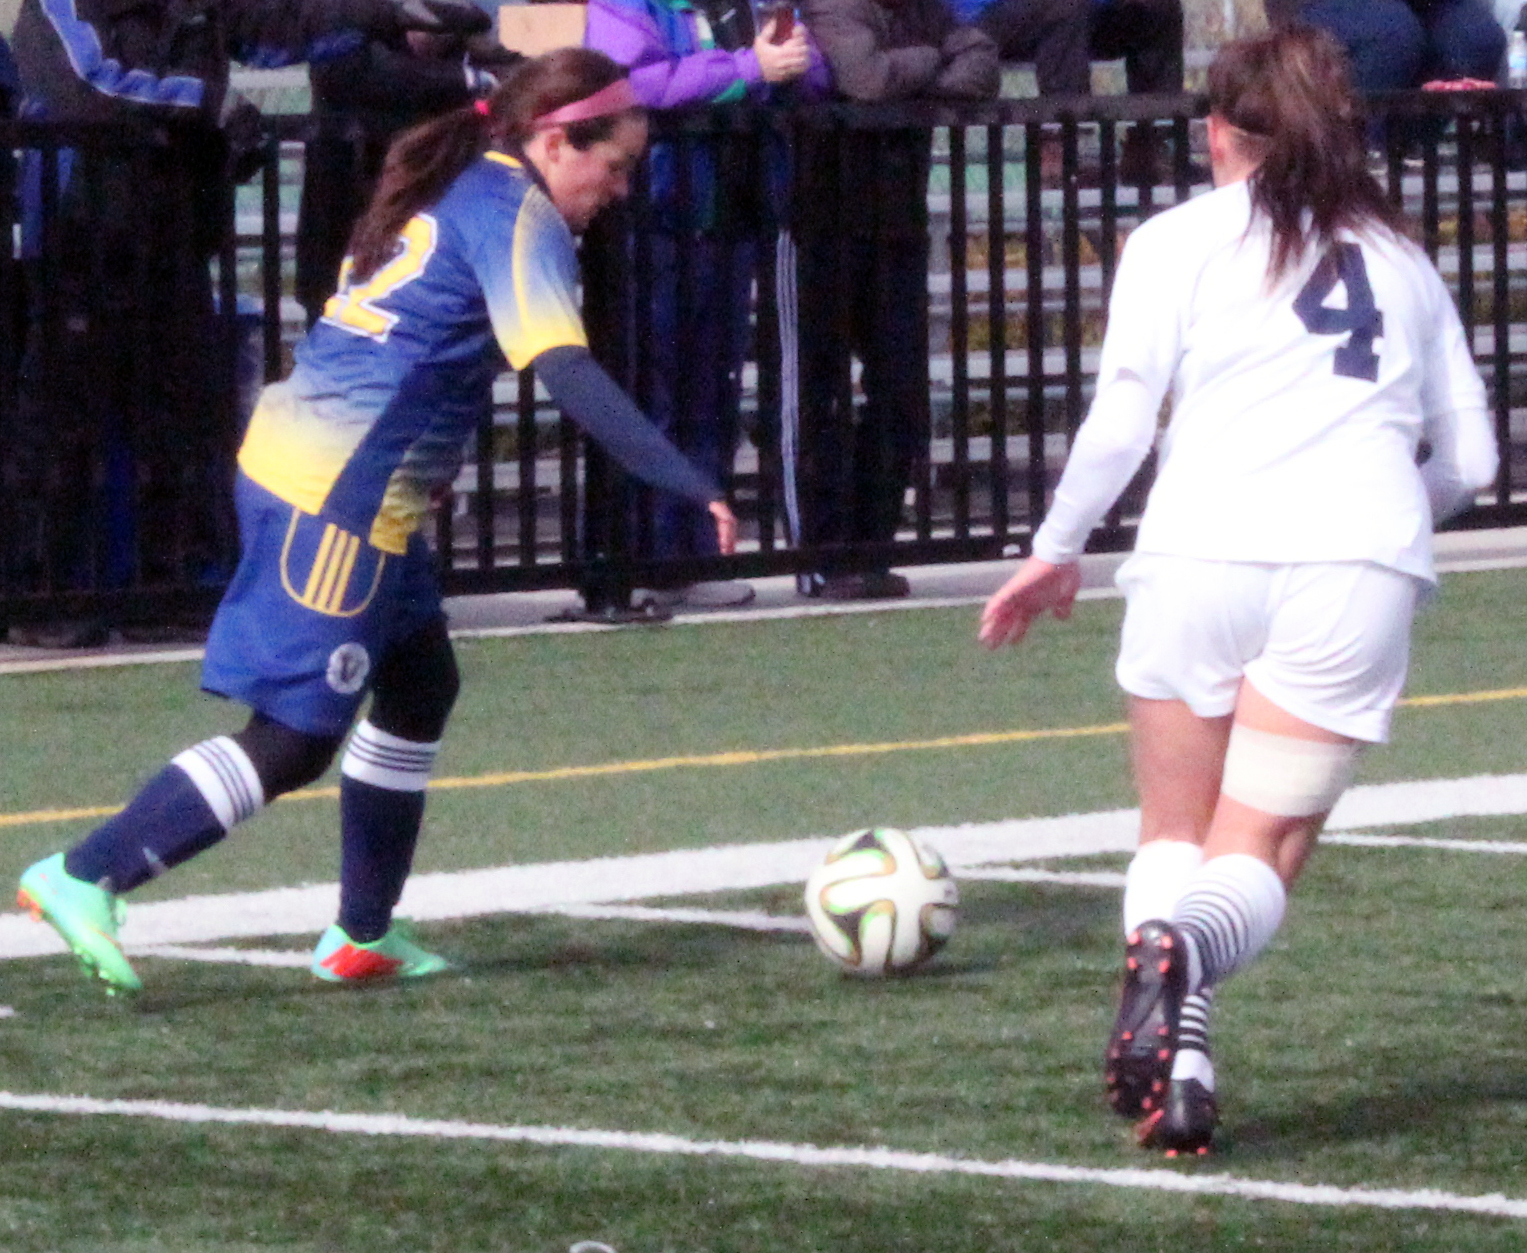 Michelle Walsh, #22, plays against University of Toronto on Oct. 19. Photo by Gabriel Rodrigues